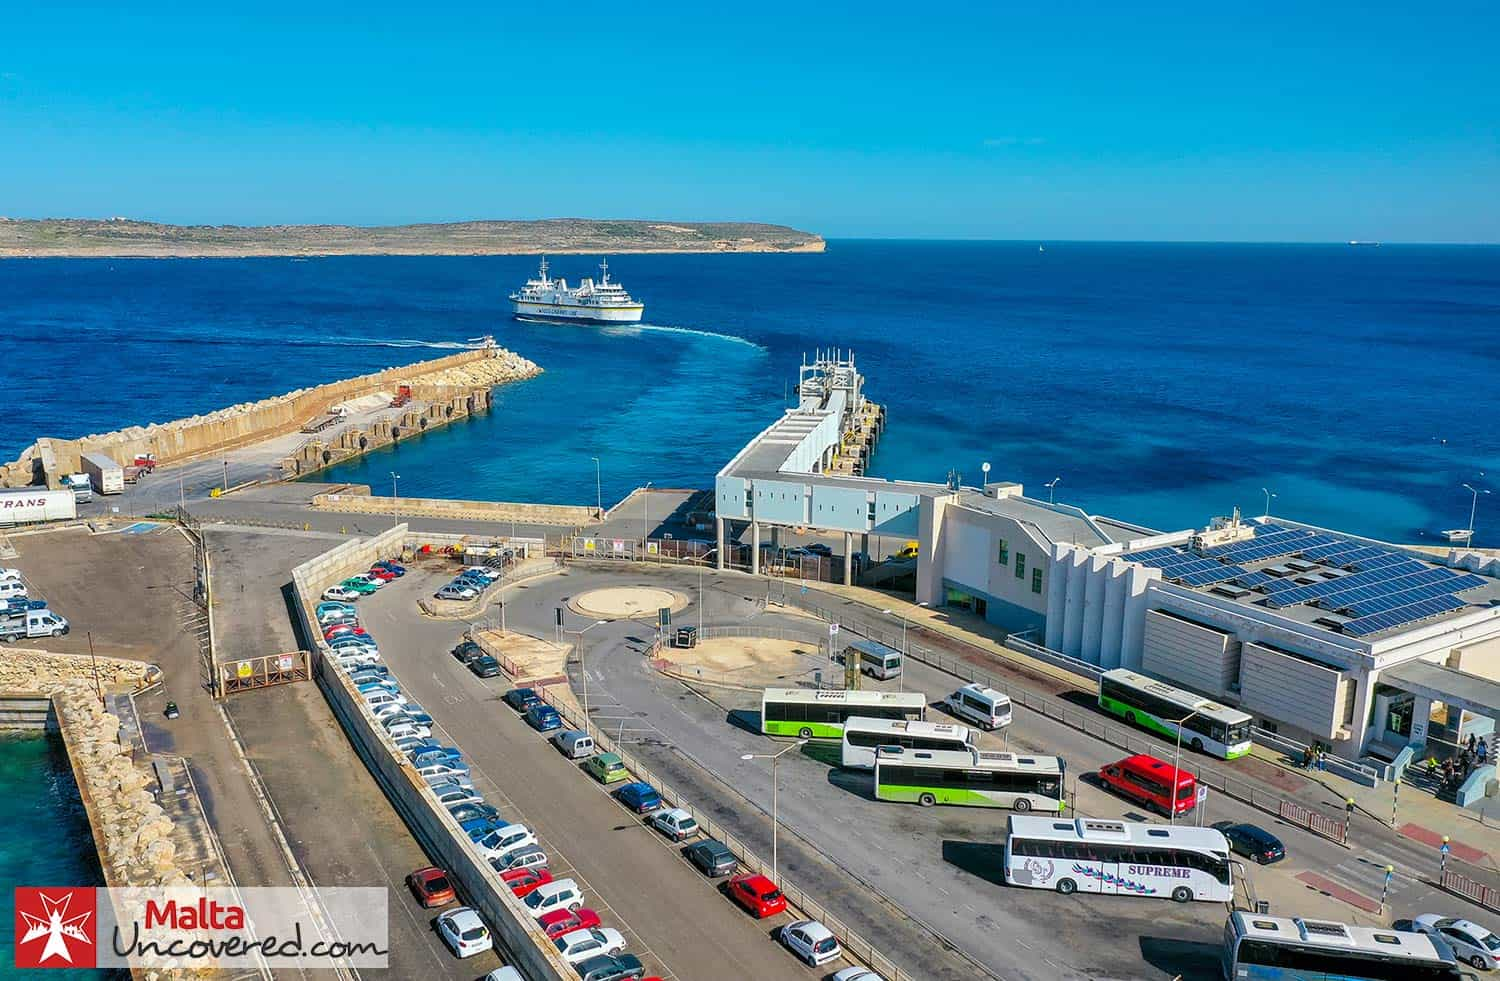 The Gozo ferry departing from Cirkewwa in the North of Malta.